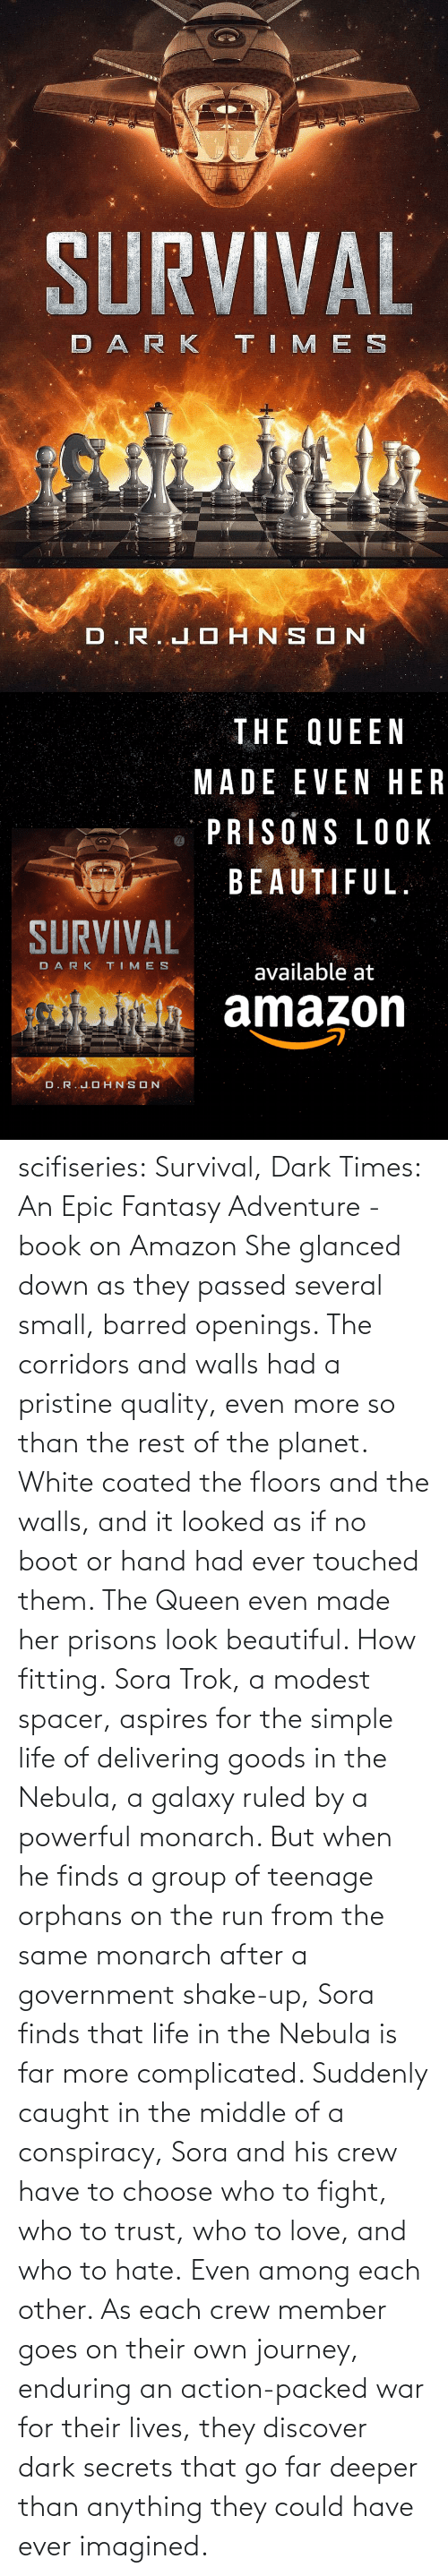 rest: scifiseries: Survival, Dark Times: An Epic Fantasy Adventure - book on Amazon  She glanced down as they  passed several small, barred openings. The corridors and walls had a  pristine quality, even more so than the rest of the planet. White coated  the floors and the walls, and it looked as if no boot or hand had ever  touched them.  The Queen even made her prisons look beautiful.  How fitting. Sora  Trok, a modest spacer, aspires for the simple life of delivering goods  in the Nebula, a galaxy ruled by a powerful monarch. But when he finds a  group of teenage orphans on the run from the same monarch after a  government shake-up, Sora finds that life in the Nebula is far more complicated.  Suddenly  caught in the middle of a conspiracy, Sora and his crew have to choose  who to fight, who to trust, who to love, and who to hate. Even among each other.  As  each crew member goes on their own journey, enduring an action-packed  war for their lives, they discover dark secrets that go far deeper than  anything they could have ever imagined.